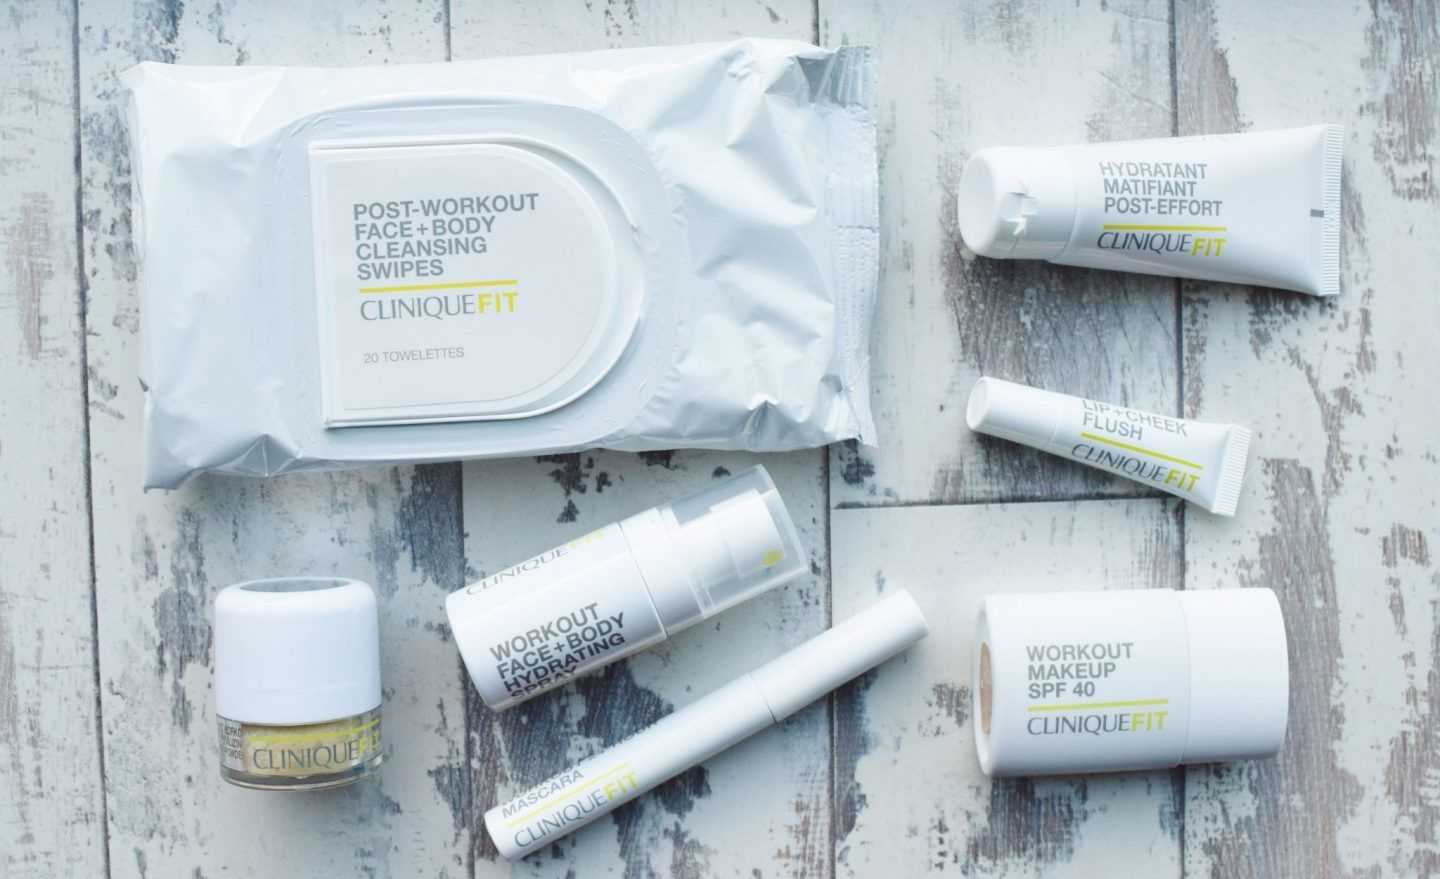 NEW CLINIQUEFIT COLLECTION Workout makeup, Cleansing